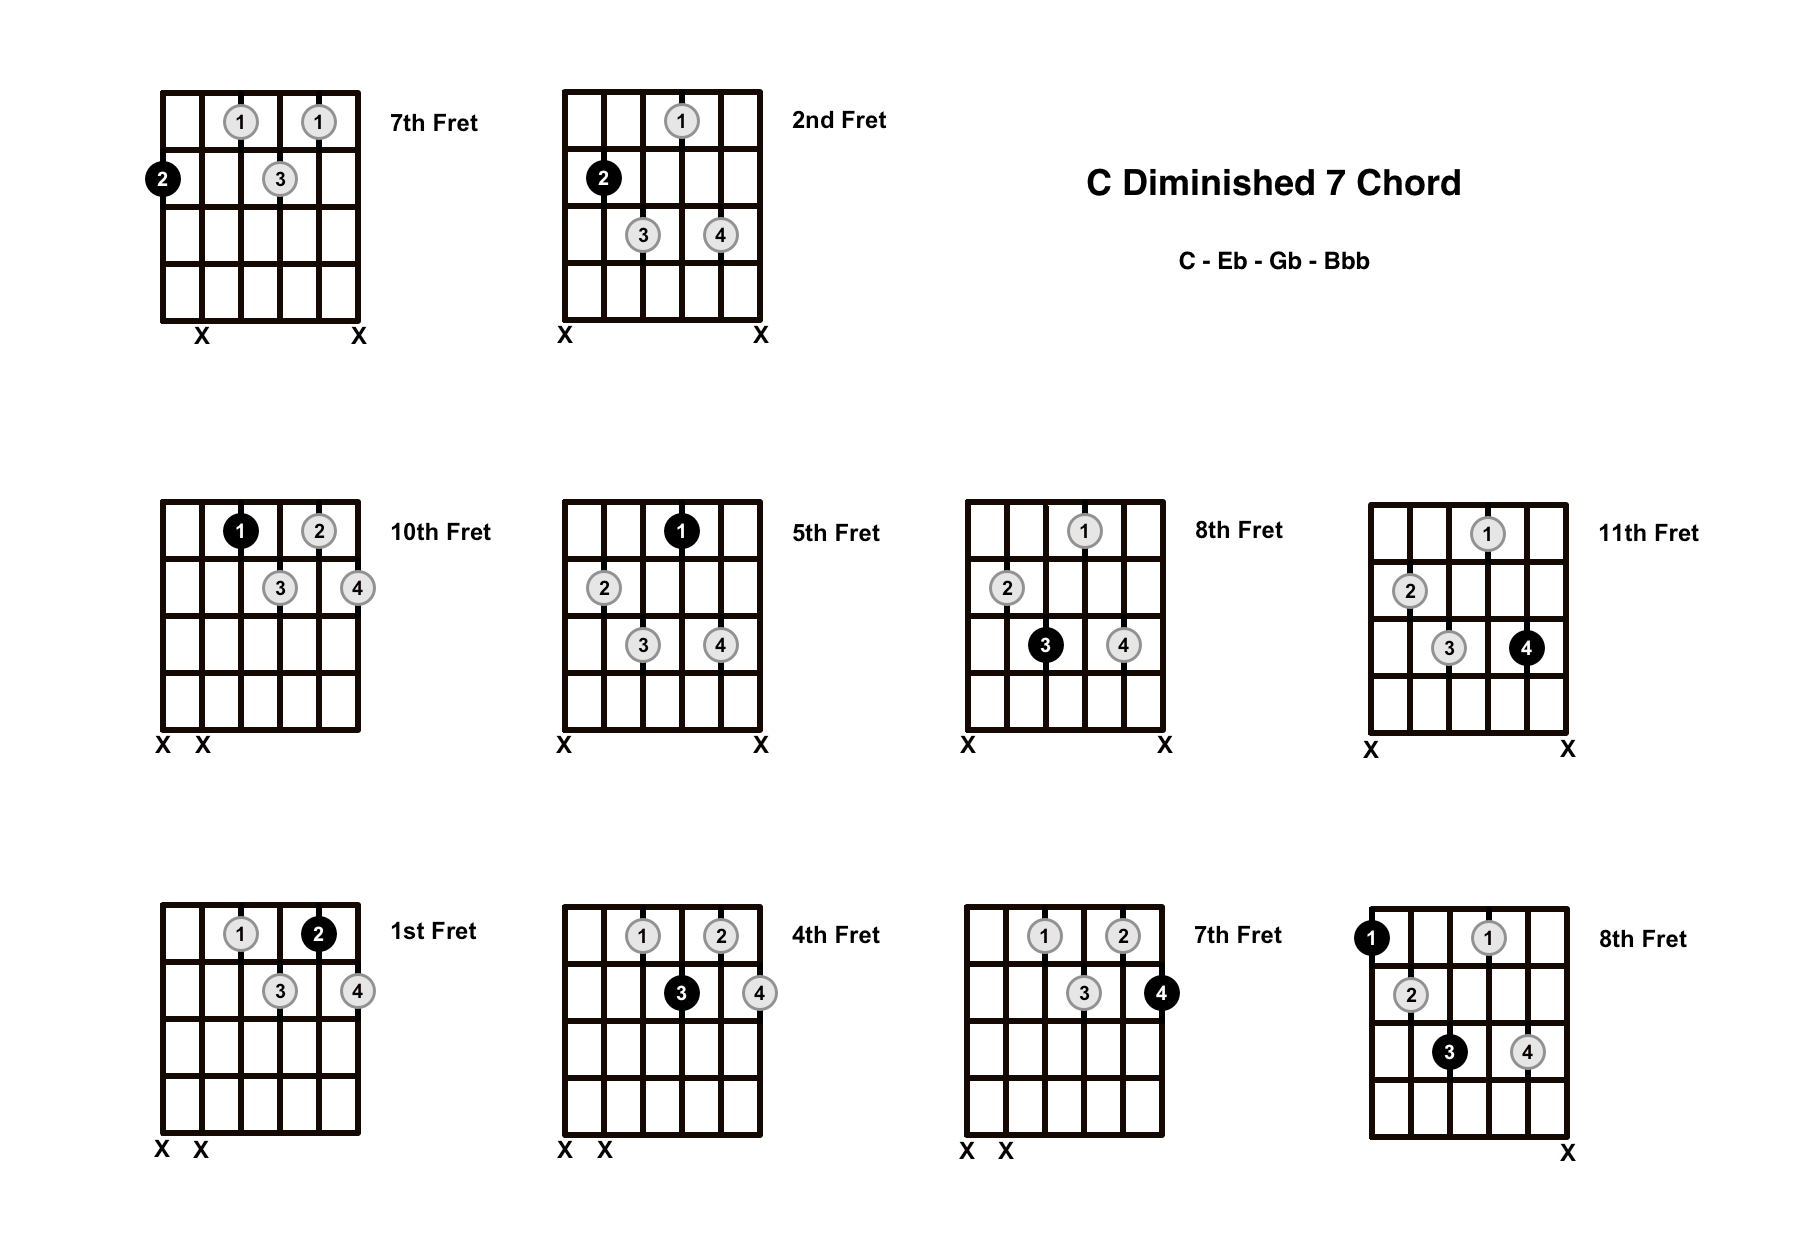 C Diminished 7 Chord On The Guitar (C Dim 7) – Diagrams, Finger Positions and Theory